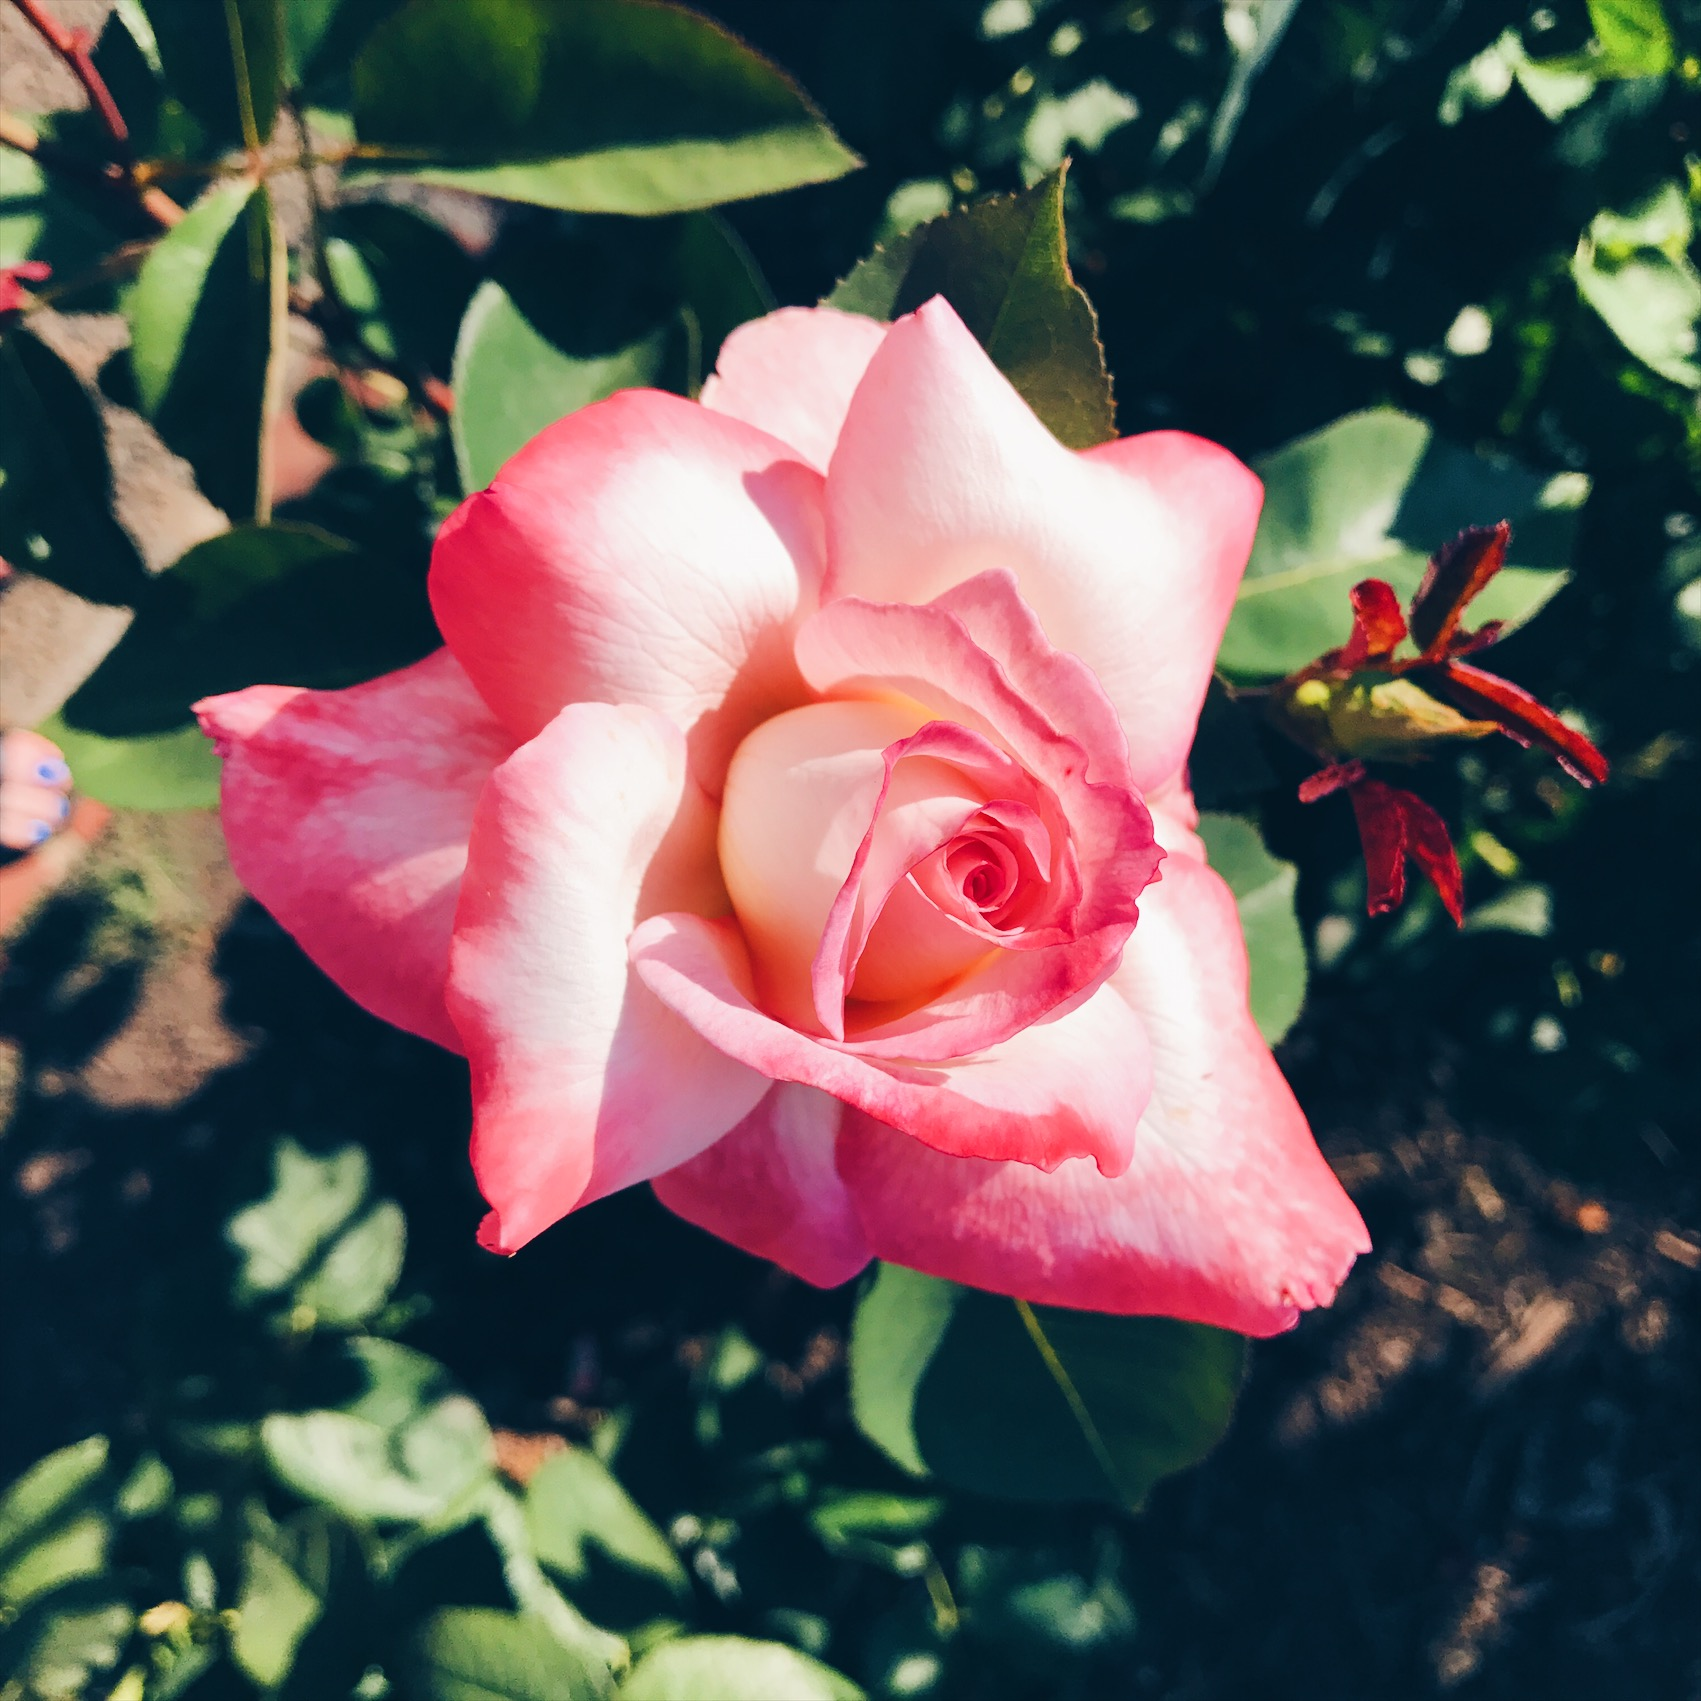 rose colored times